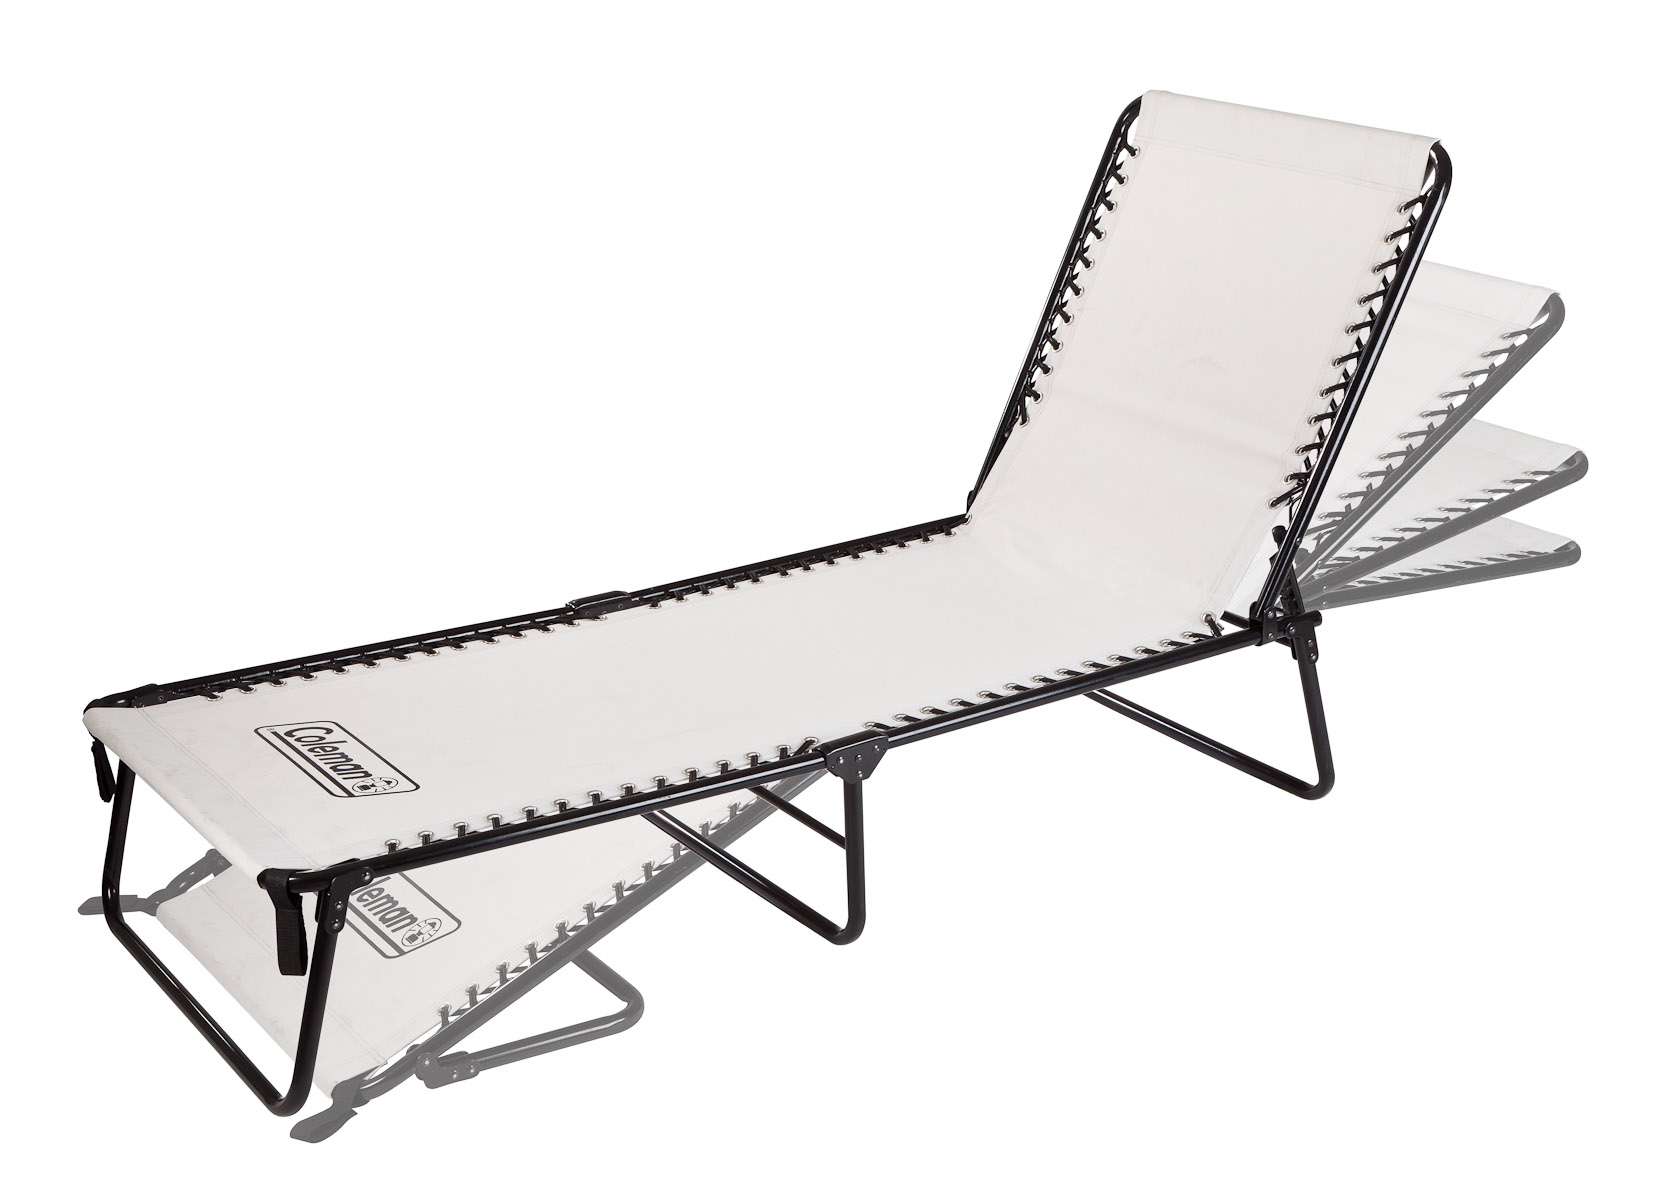 Hero photo of a Coleman Folding Chaise Lounge photographed in studio for product packaging, print collateral, and advertising